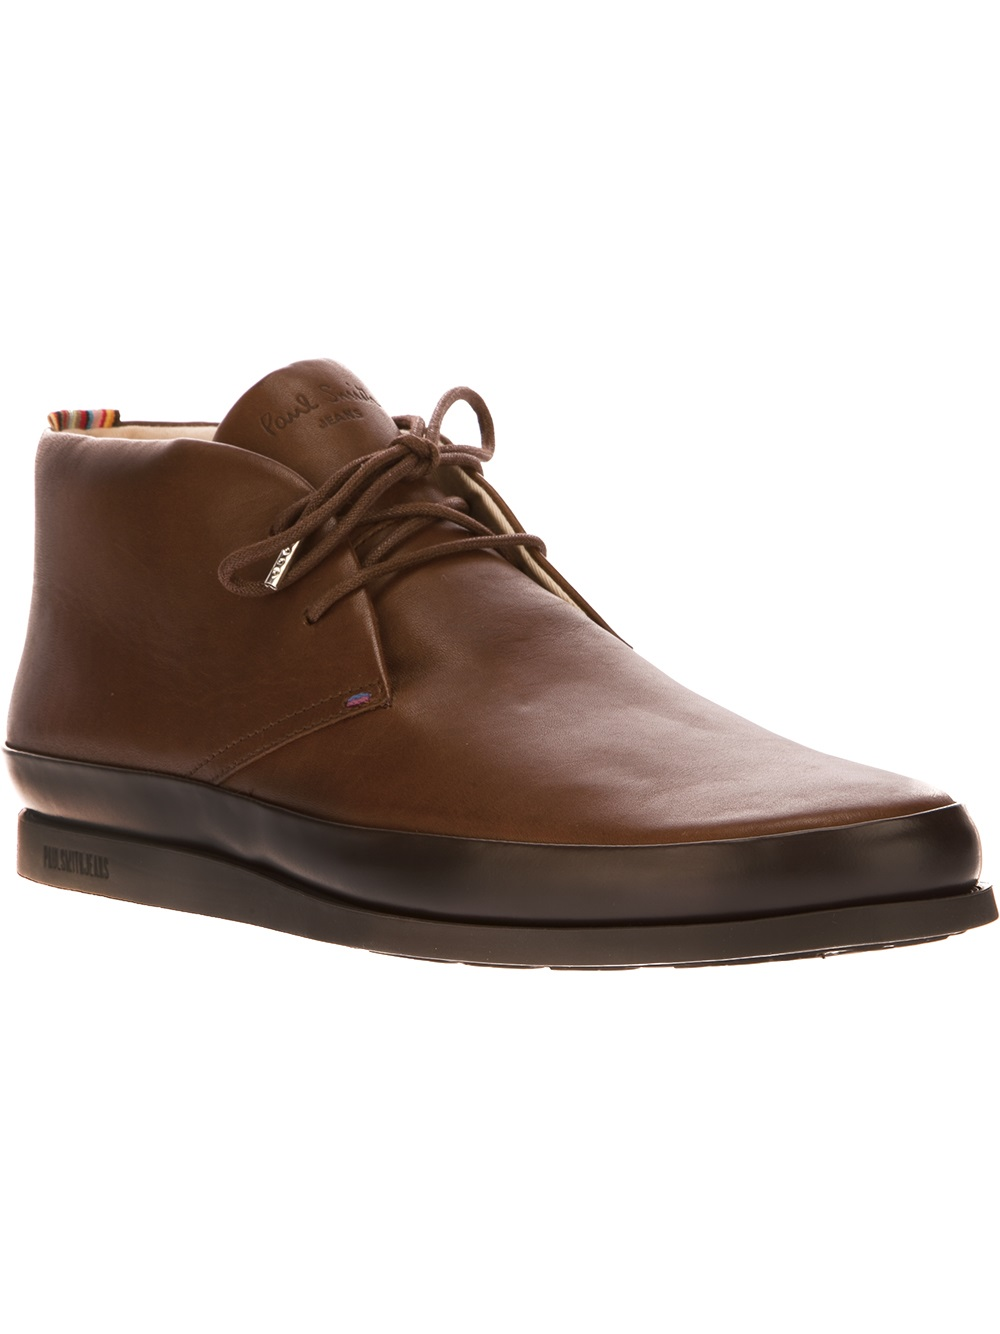 214e91d8580 Paul Smith Brown Loomis Chukka Boot for men